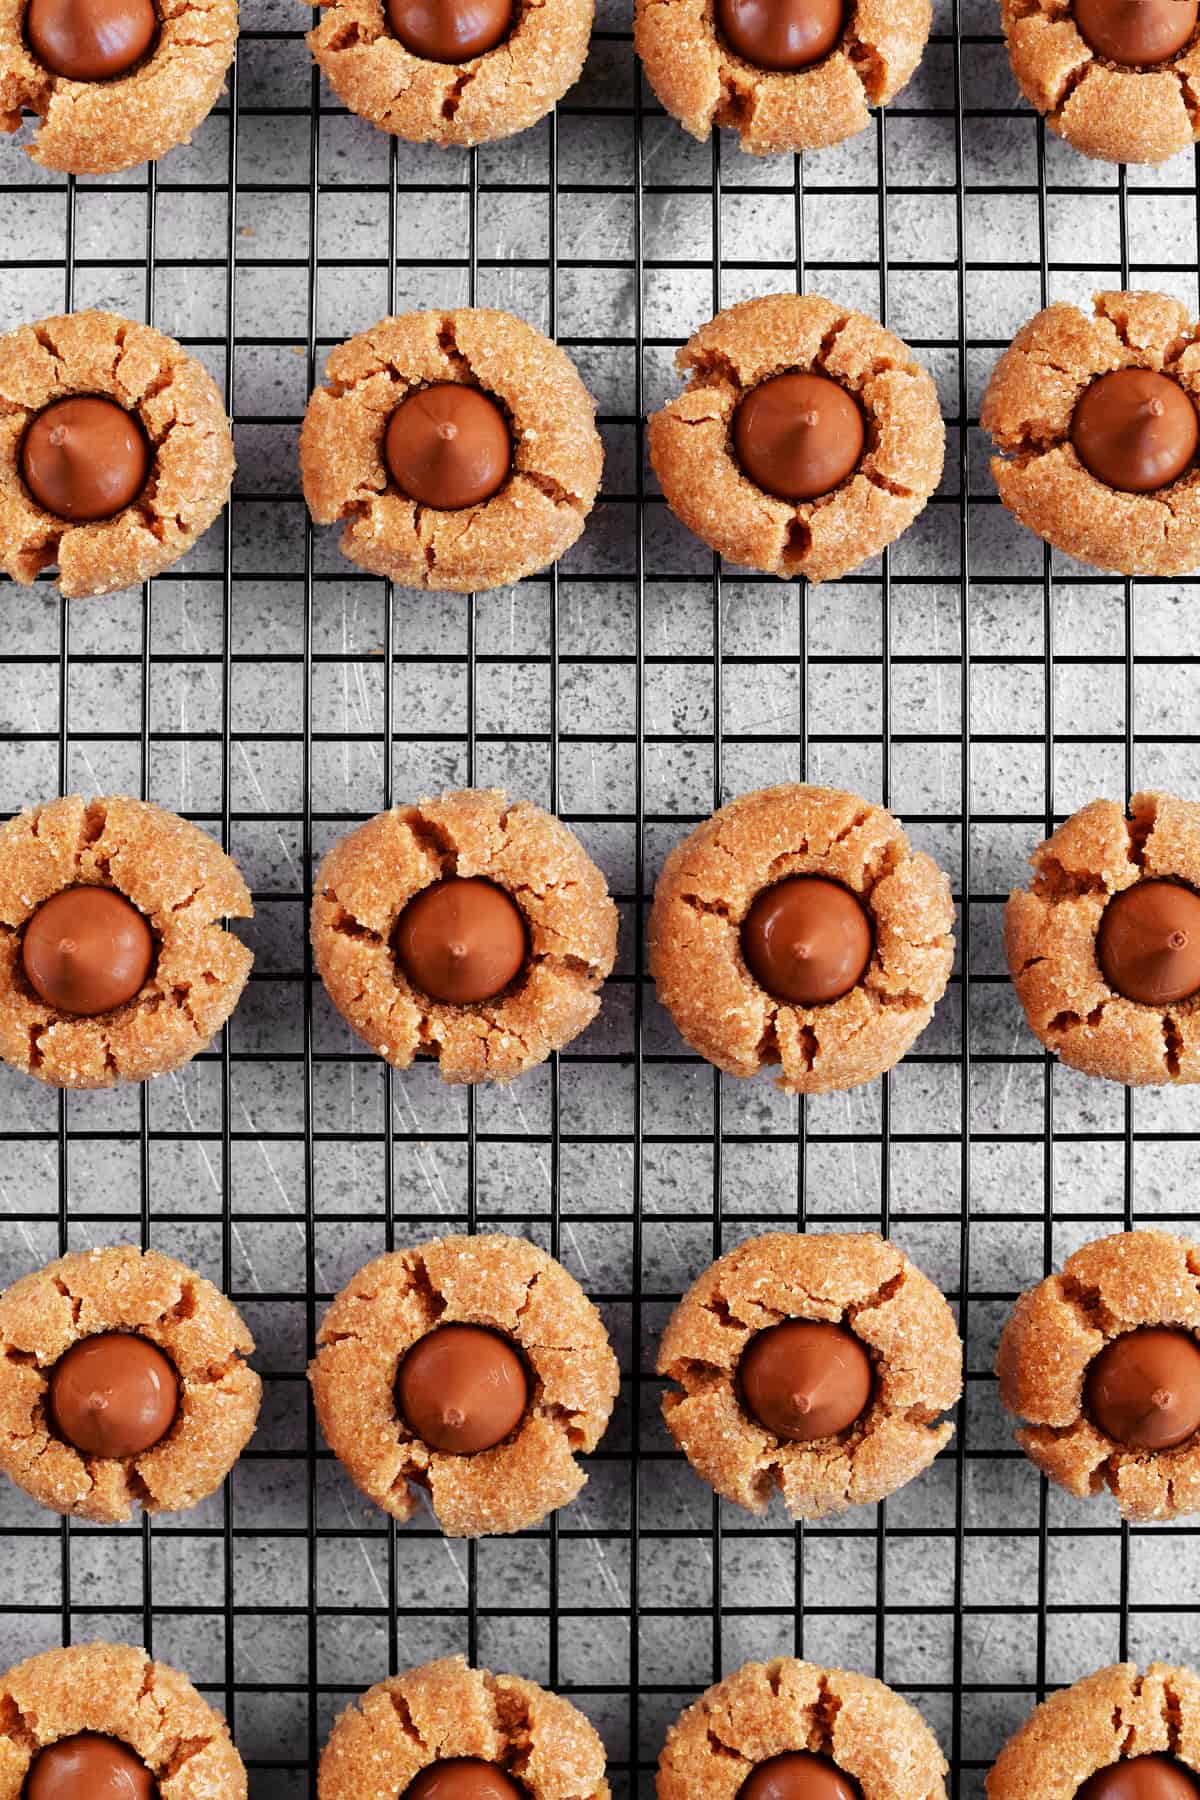 baked peanut butter blossoms on the cooling rack